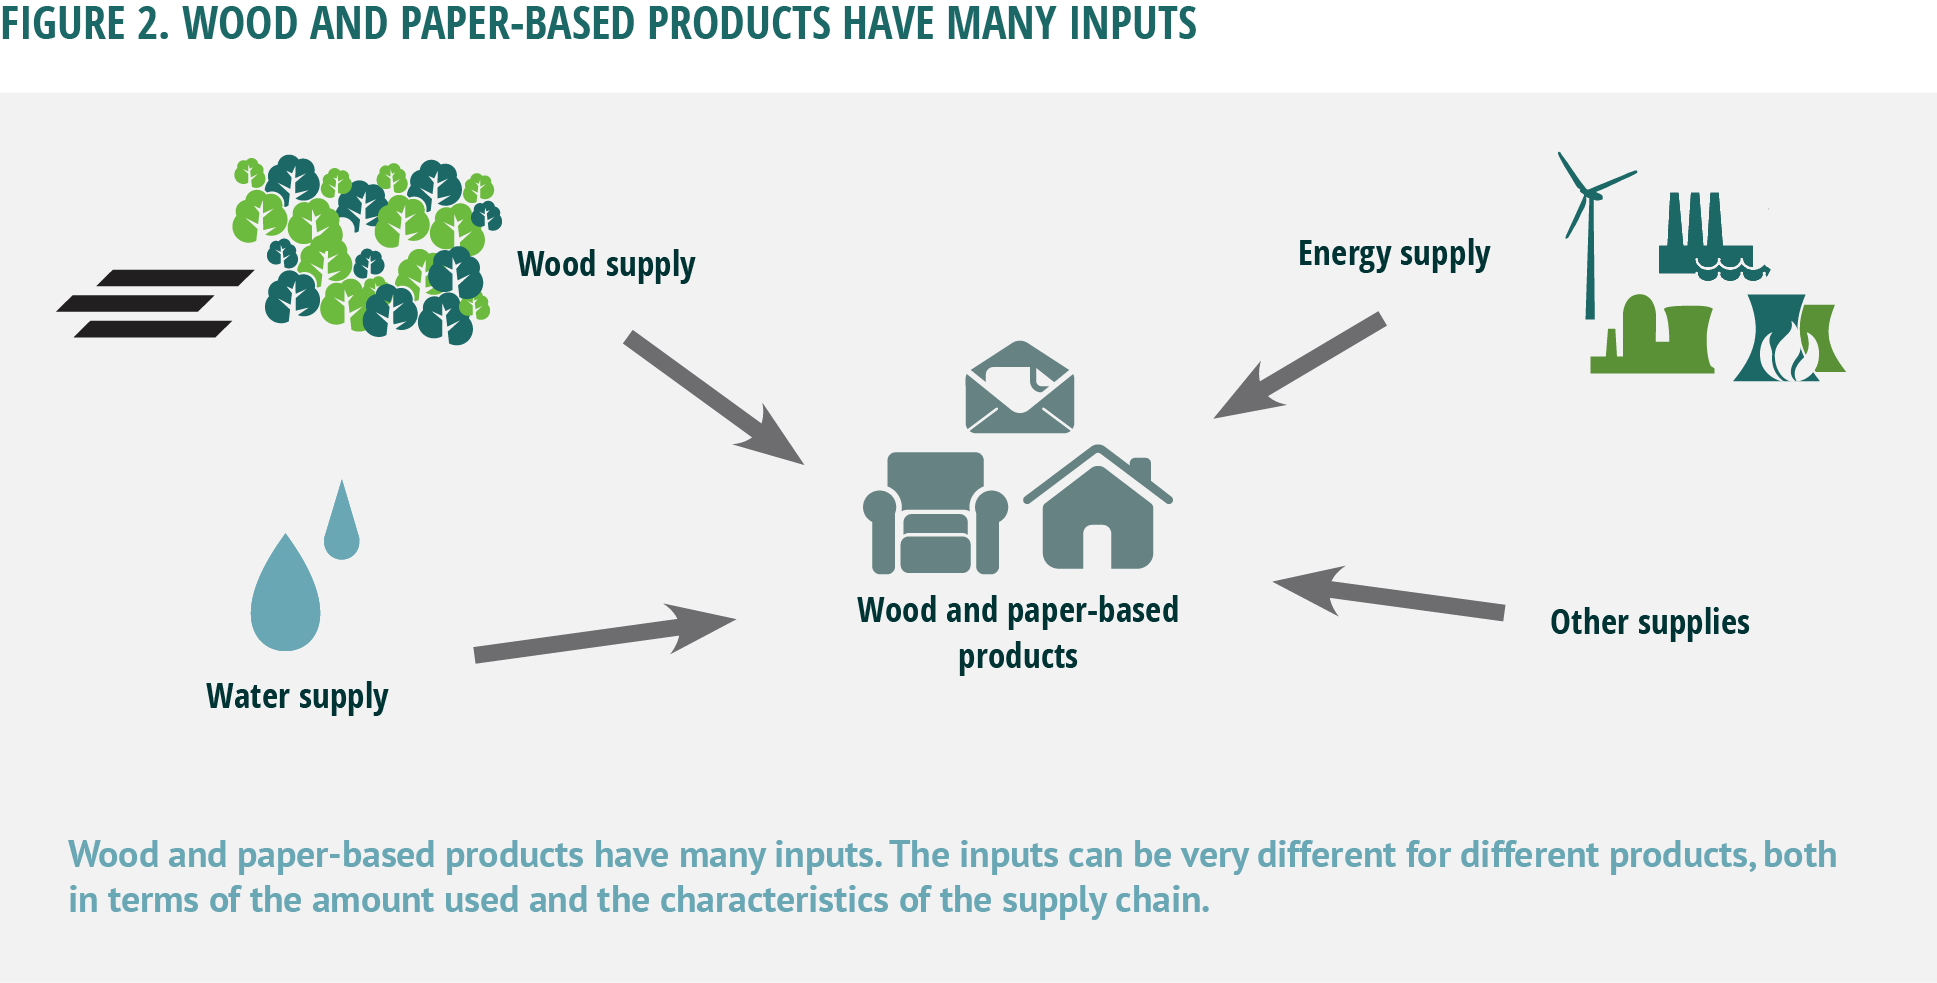 Home Sustainable Forest Products How Solar Energy Works Diagram Apps Directories Wood And Paper Based Have Many Inputs The Can Be Very Different